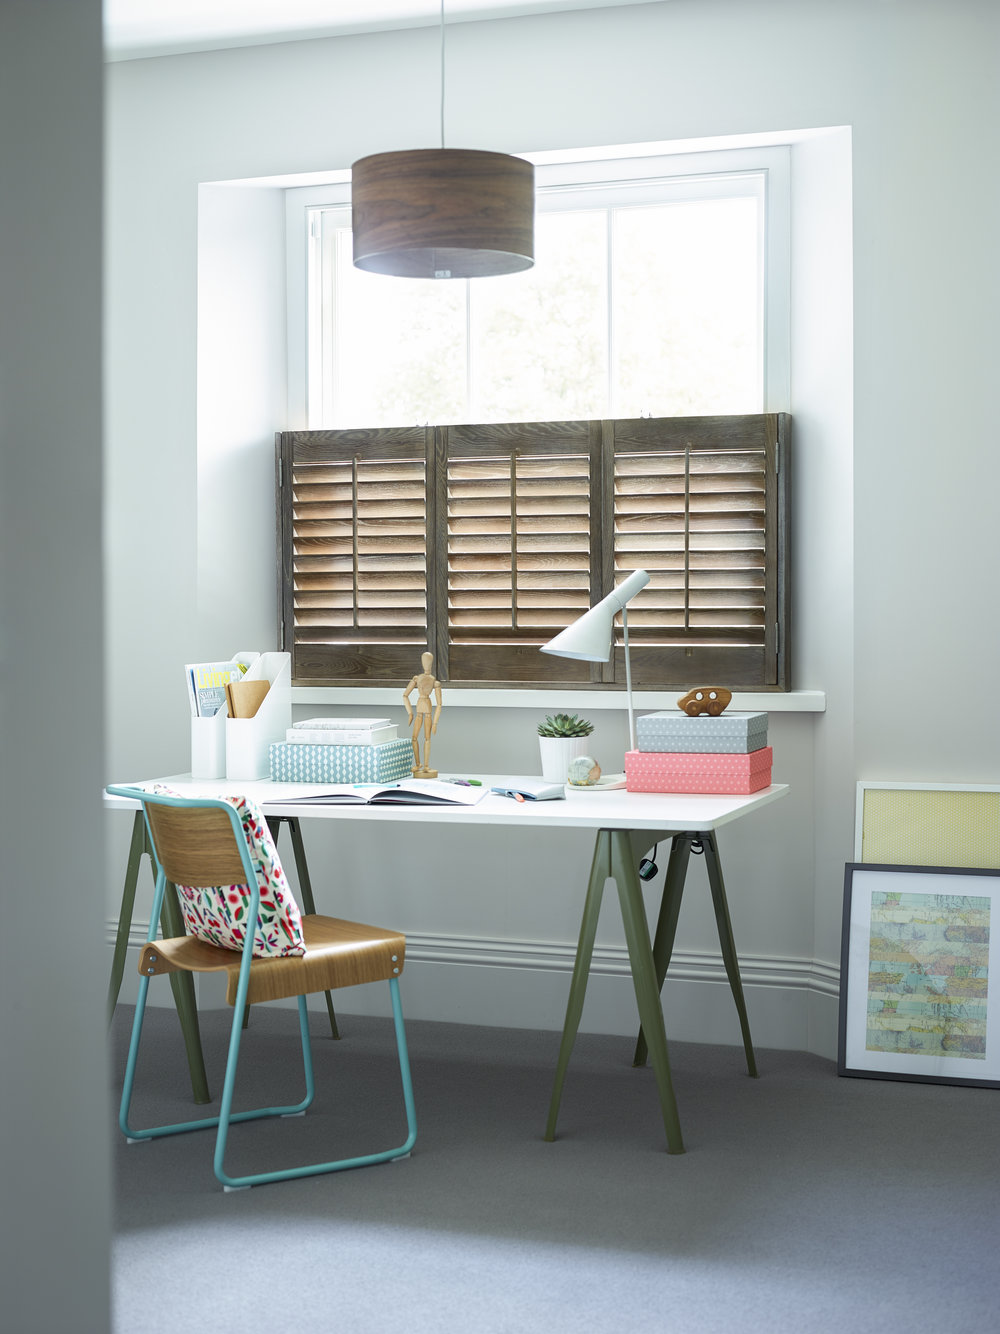 Cafe Style Shutters-   These are ideal if you live on a road or at street level and want to keep your blinds or curtains too as they maintain your privacy during the day when the curtains are pulled.